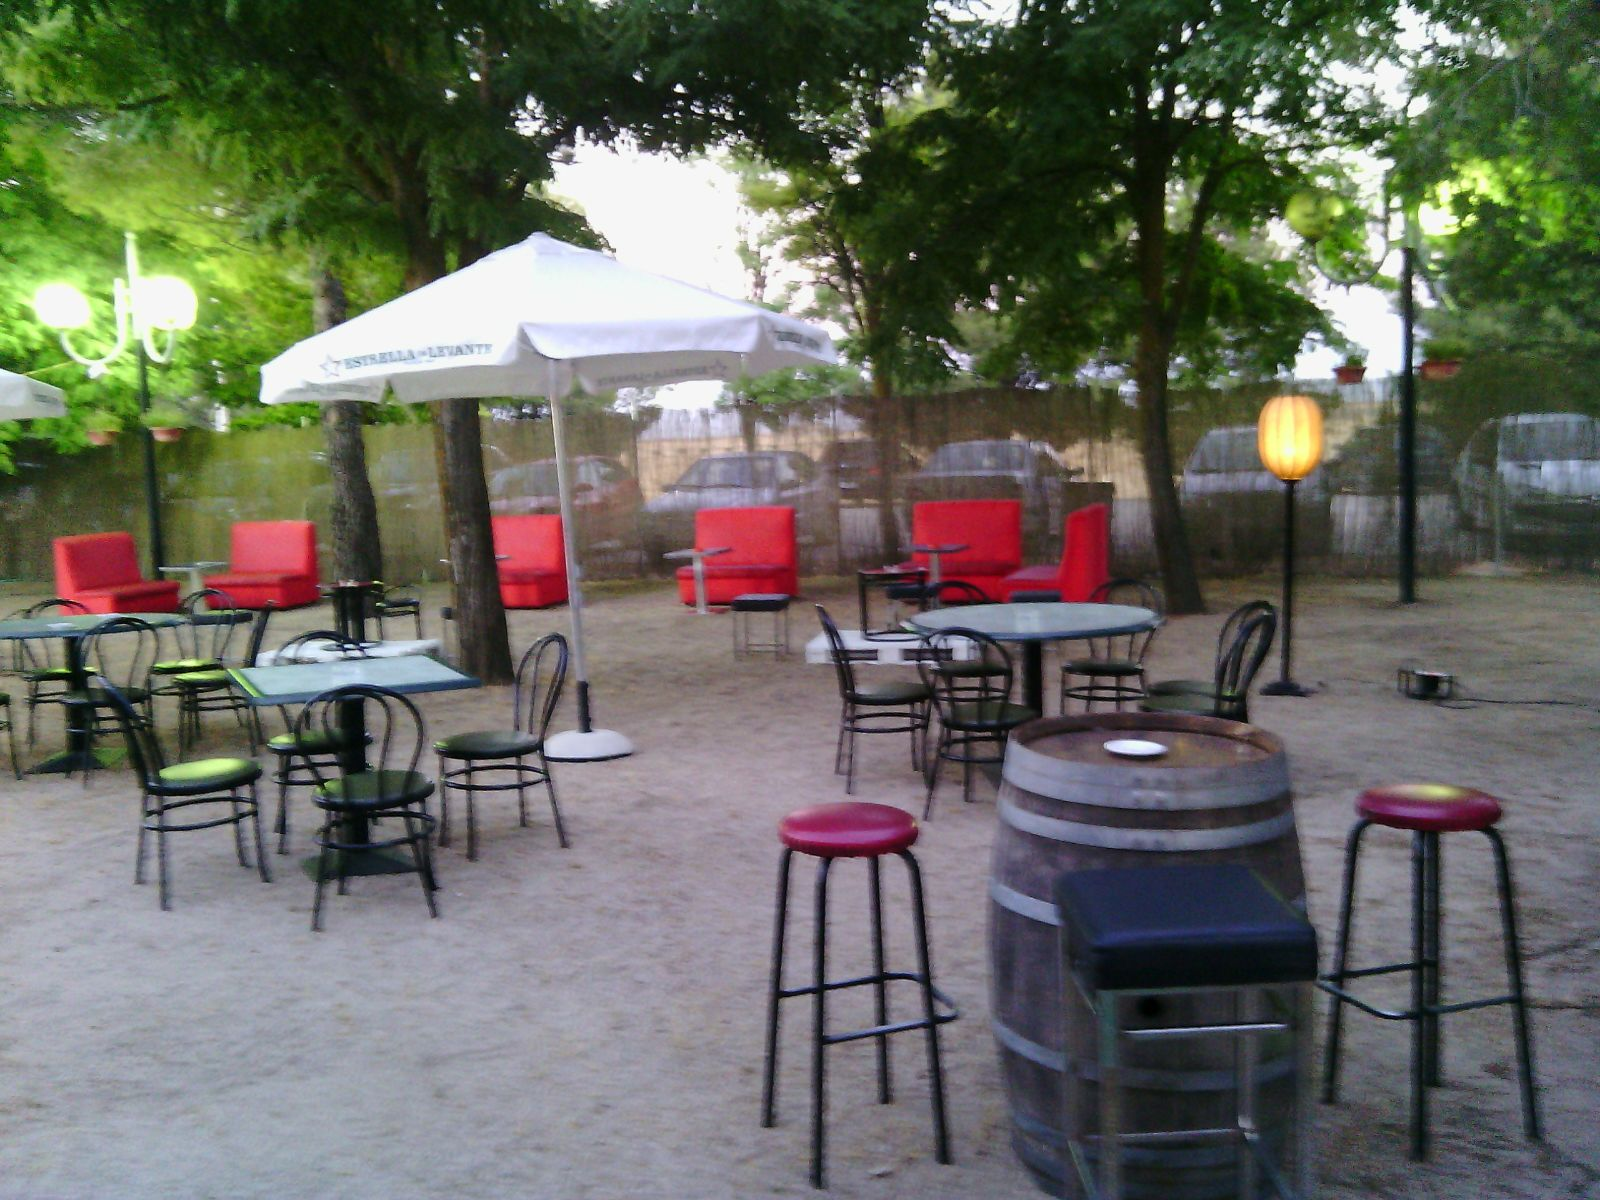 Ven a disfrutar de nuestra terraza chill out club - Terraza chill out ...